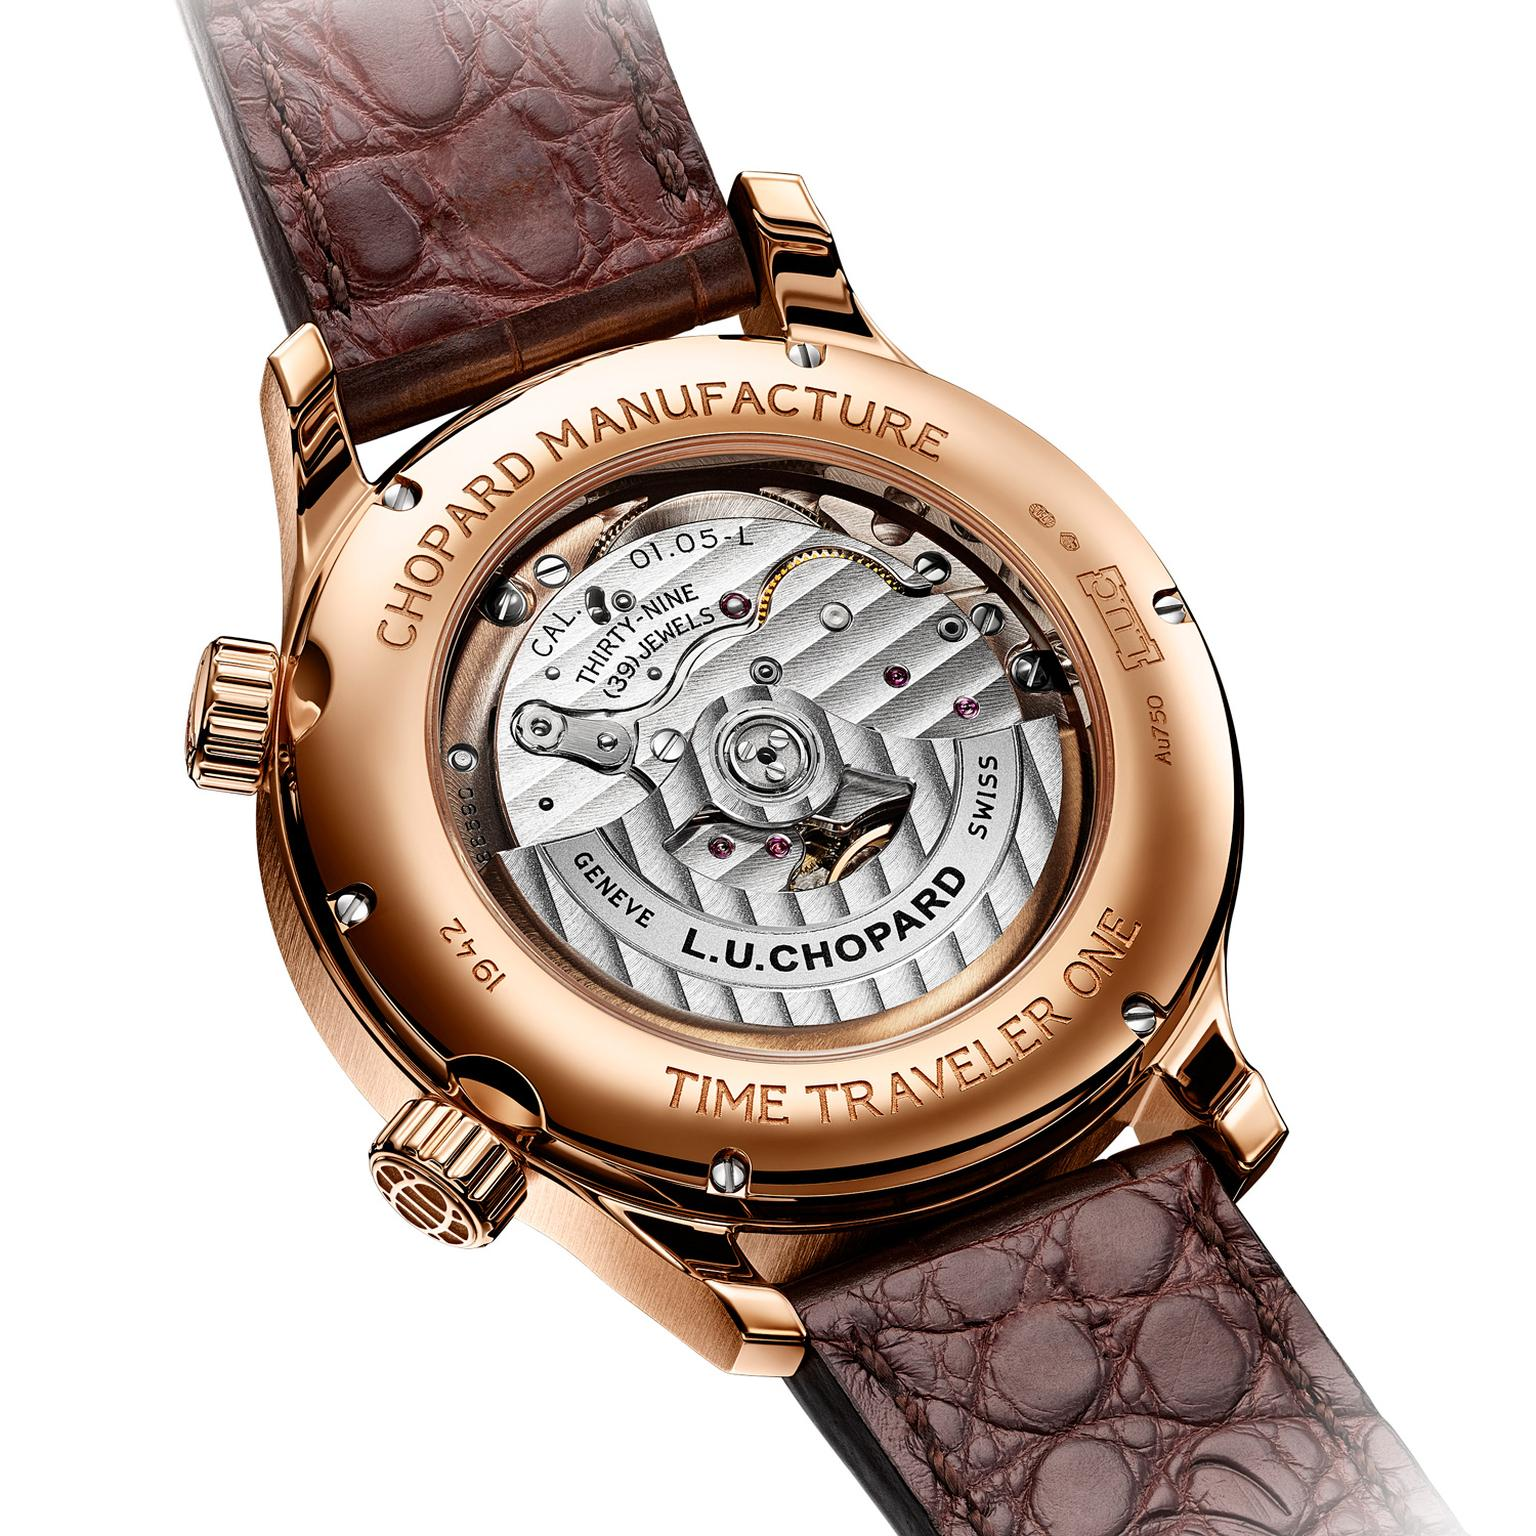 Chopard L.U.C Time Traveler One rose gold movement